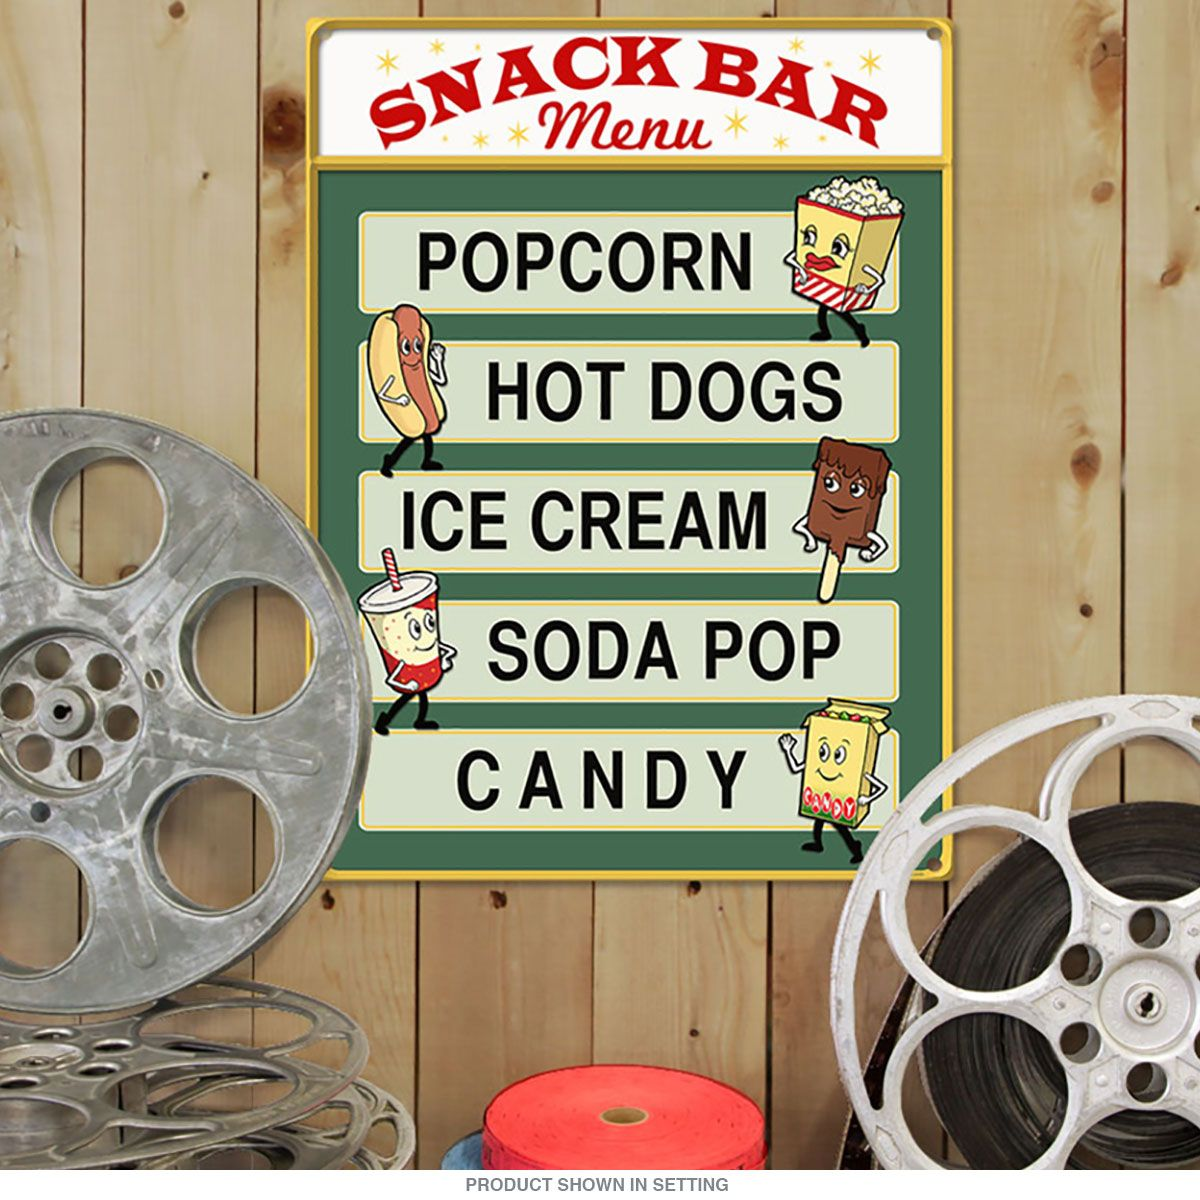 Theater Room Snack Bar: Snack Bar Menu Popcorn Hot Dogs Home Theater Sign